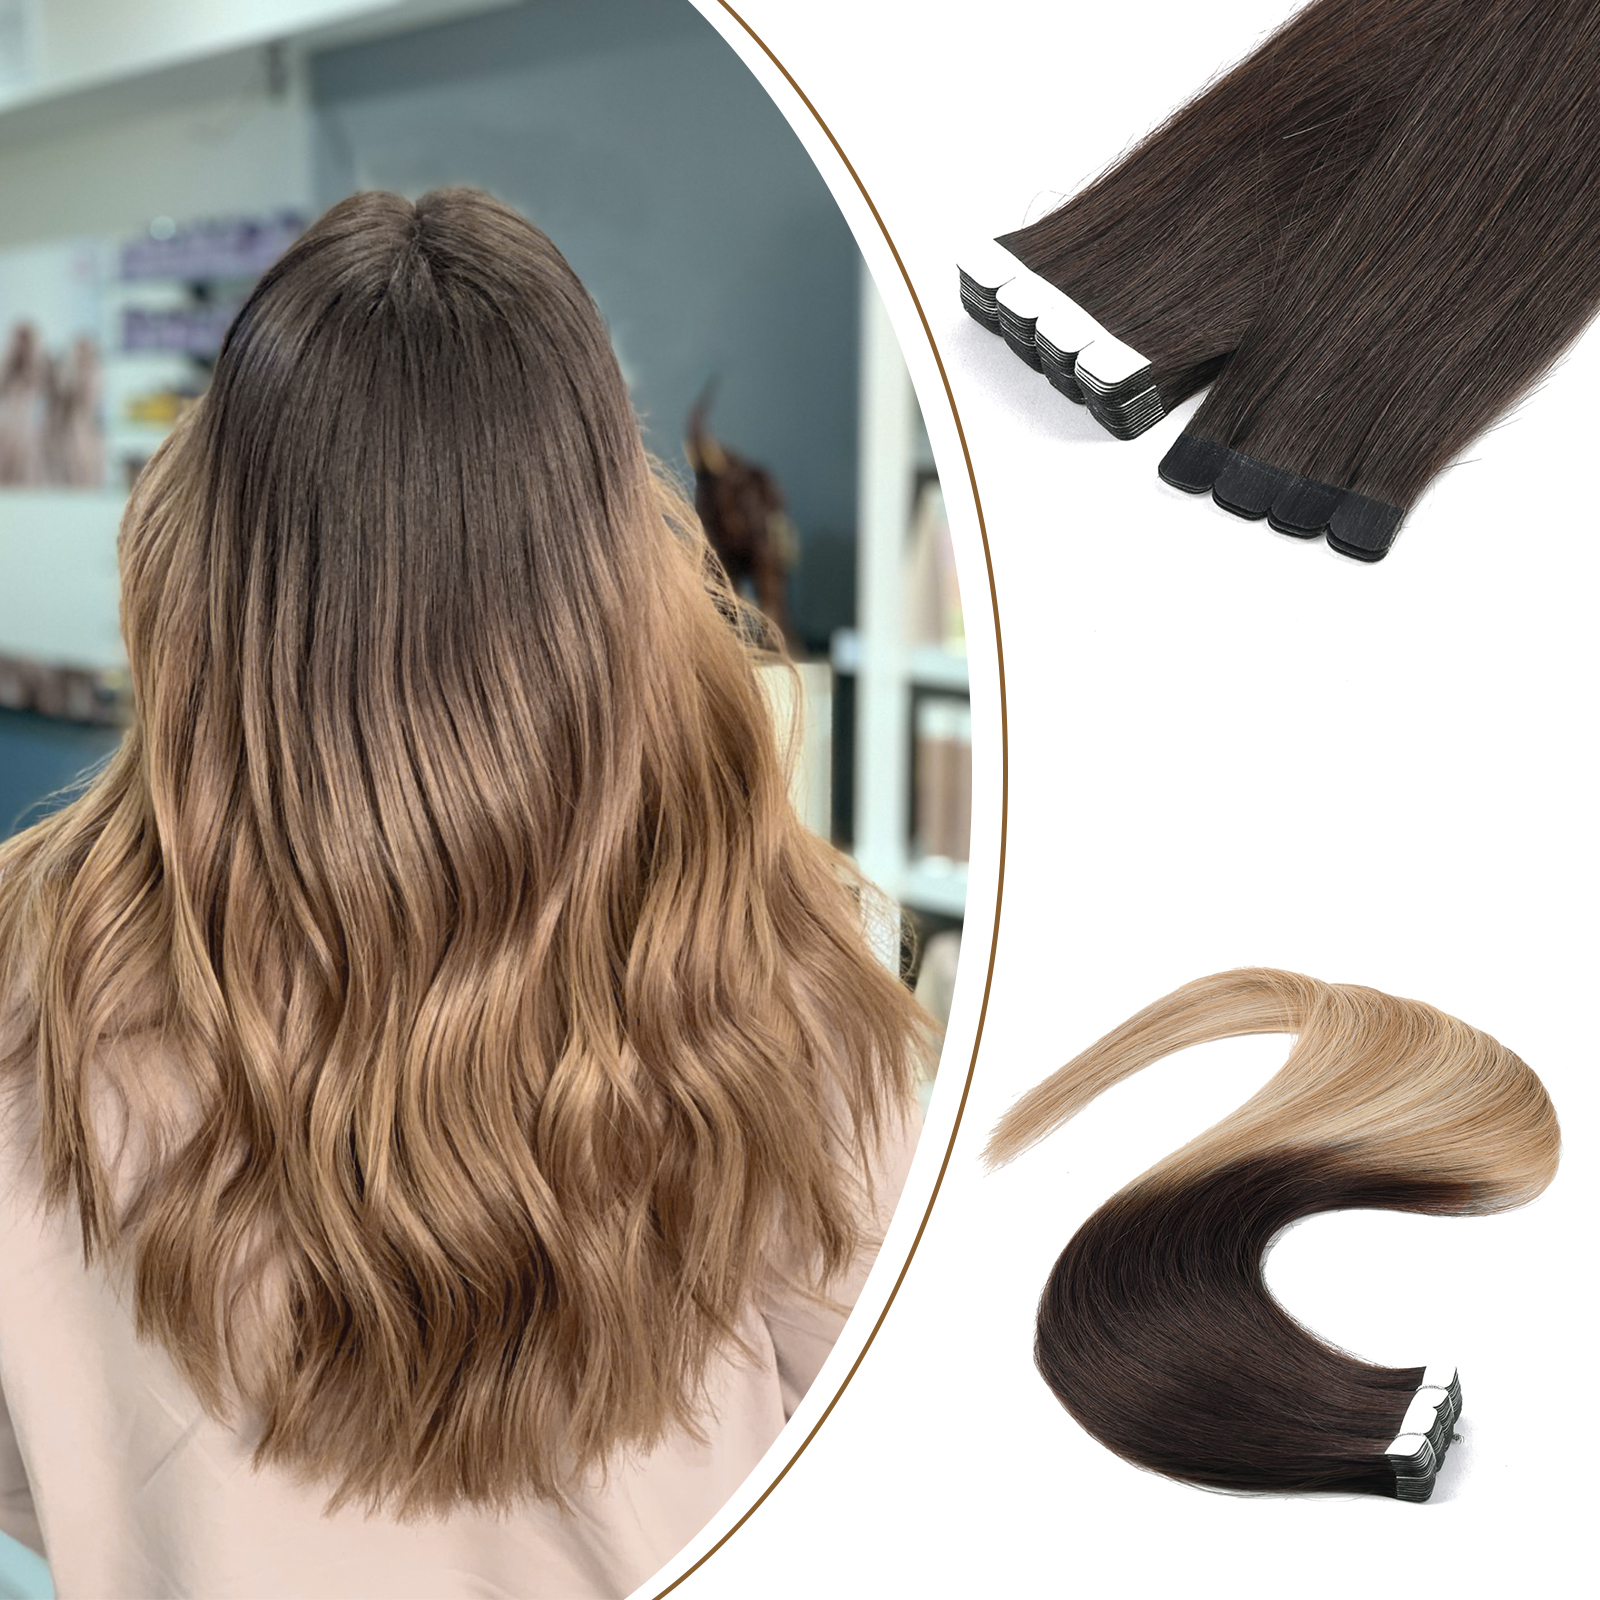 Bily Mini Tape In Human Hair Extensions Invisible Balayage Colored Machine Remy Skin Weft Natural Straight 10